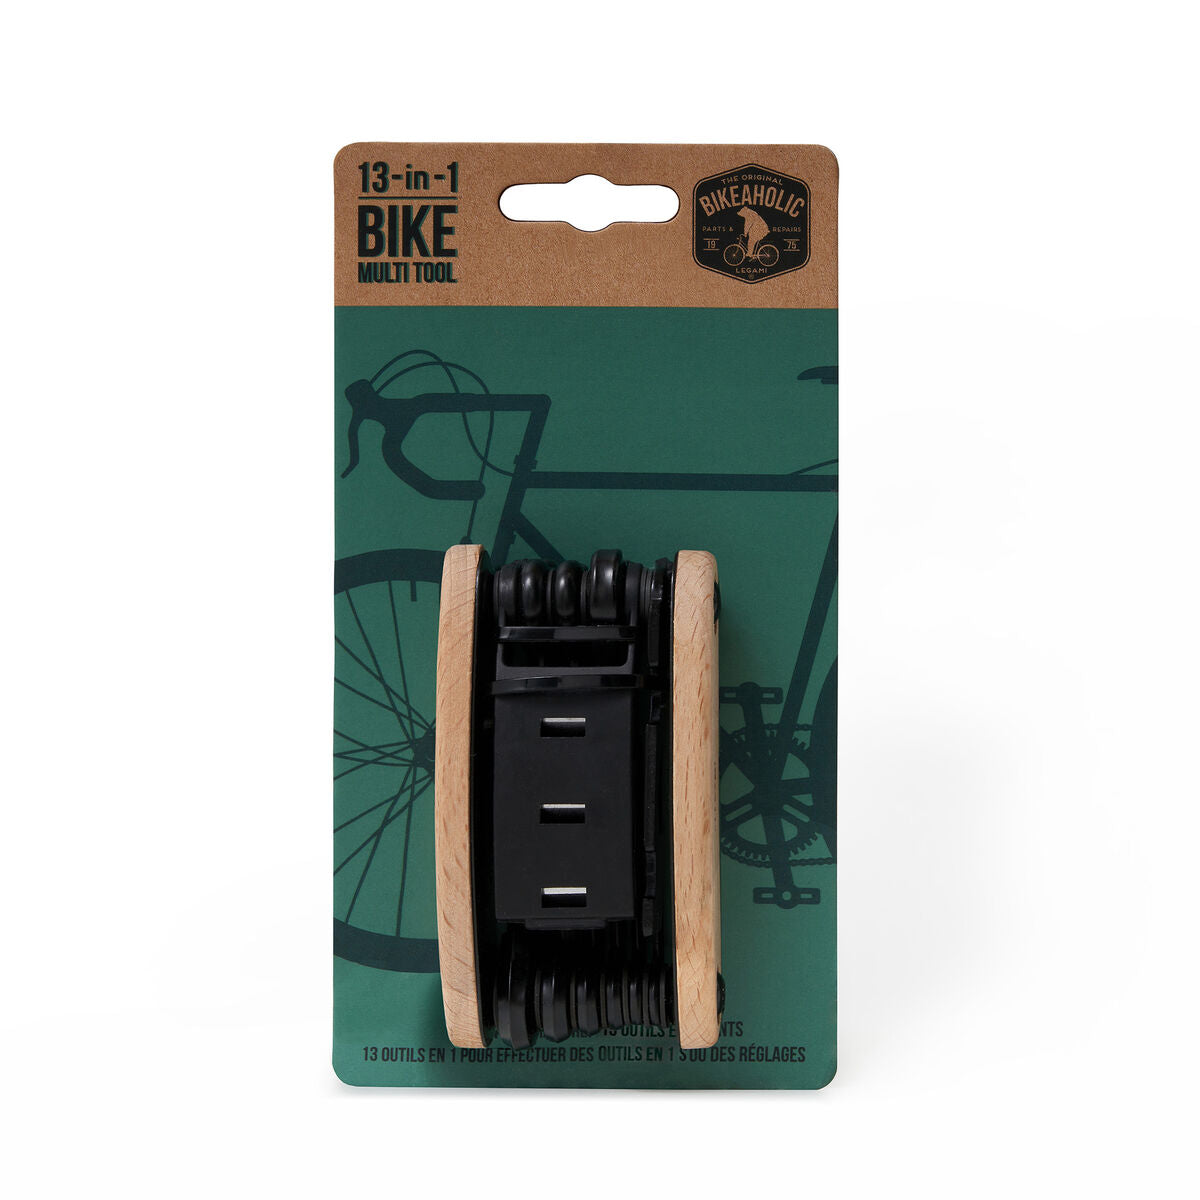 13-in-1 Bike Multi Tool